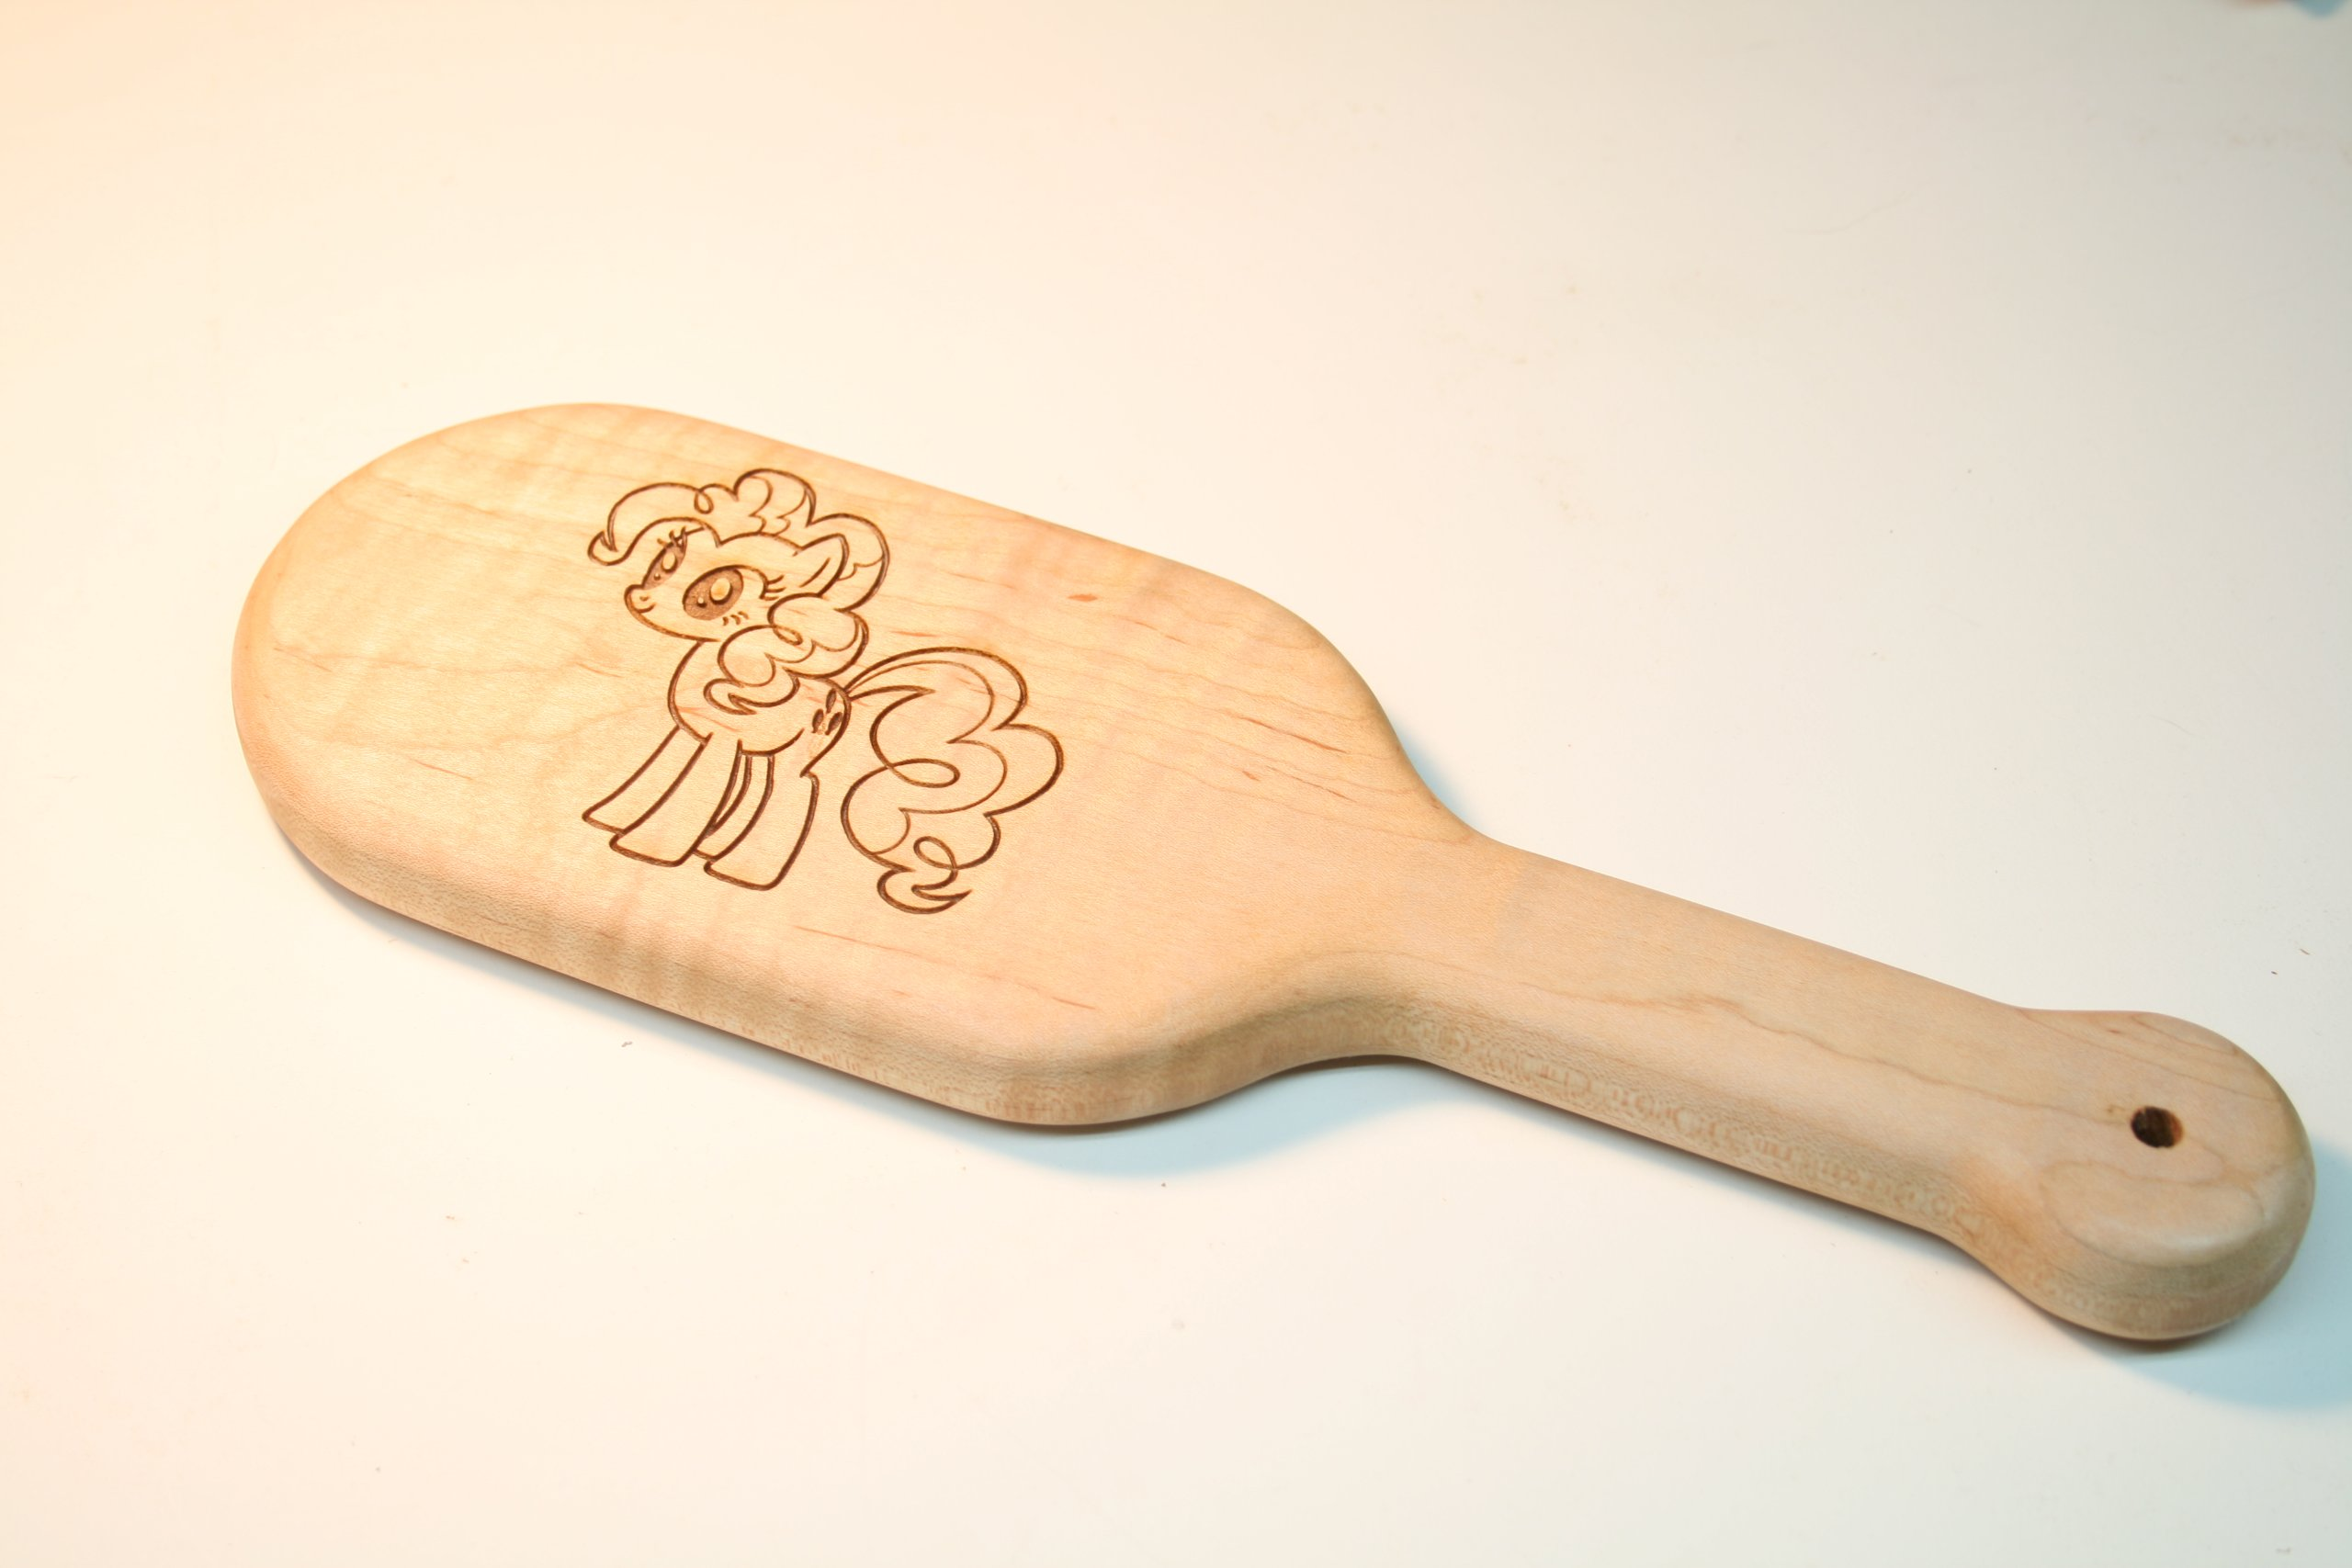 Laser Engraved Pinkie Pie BDSM Spanking Paddle in Maple Fetish BDSM Sex Gear by The Kink Factory USA by The Kink Factory